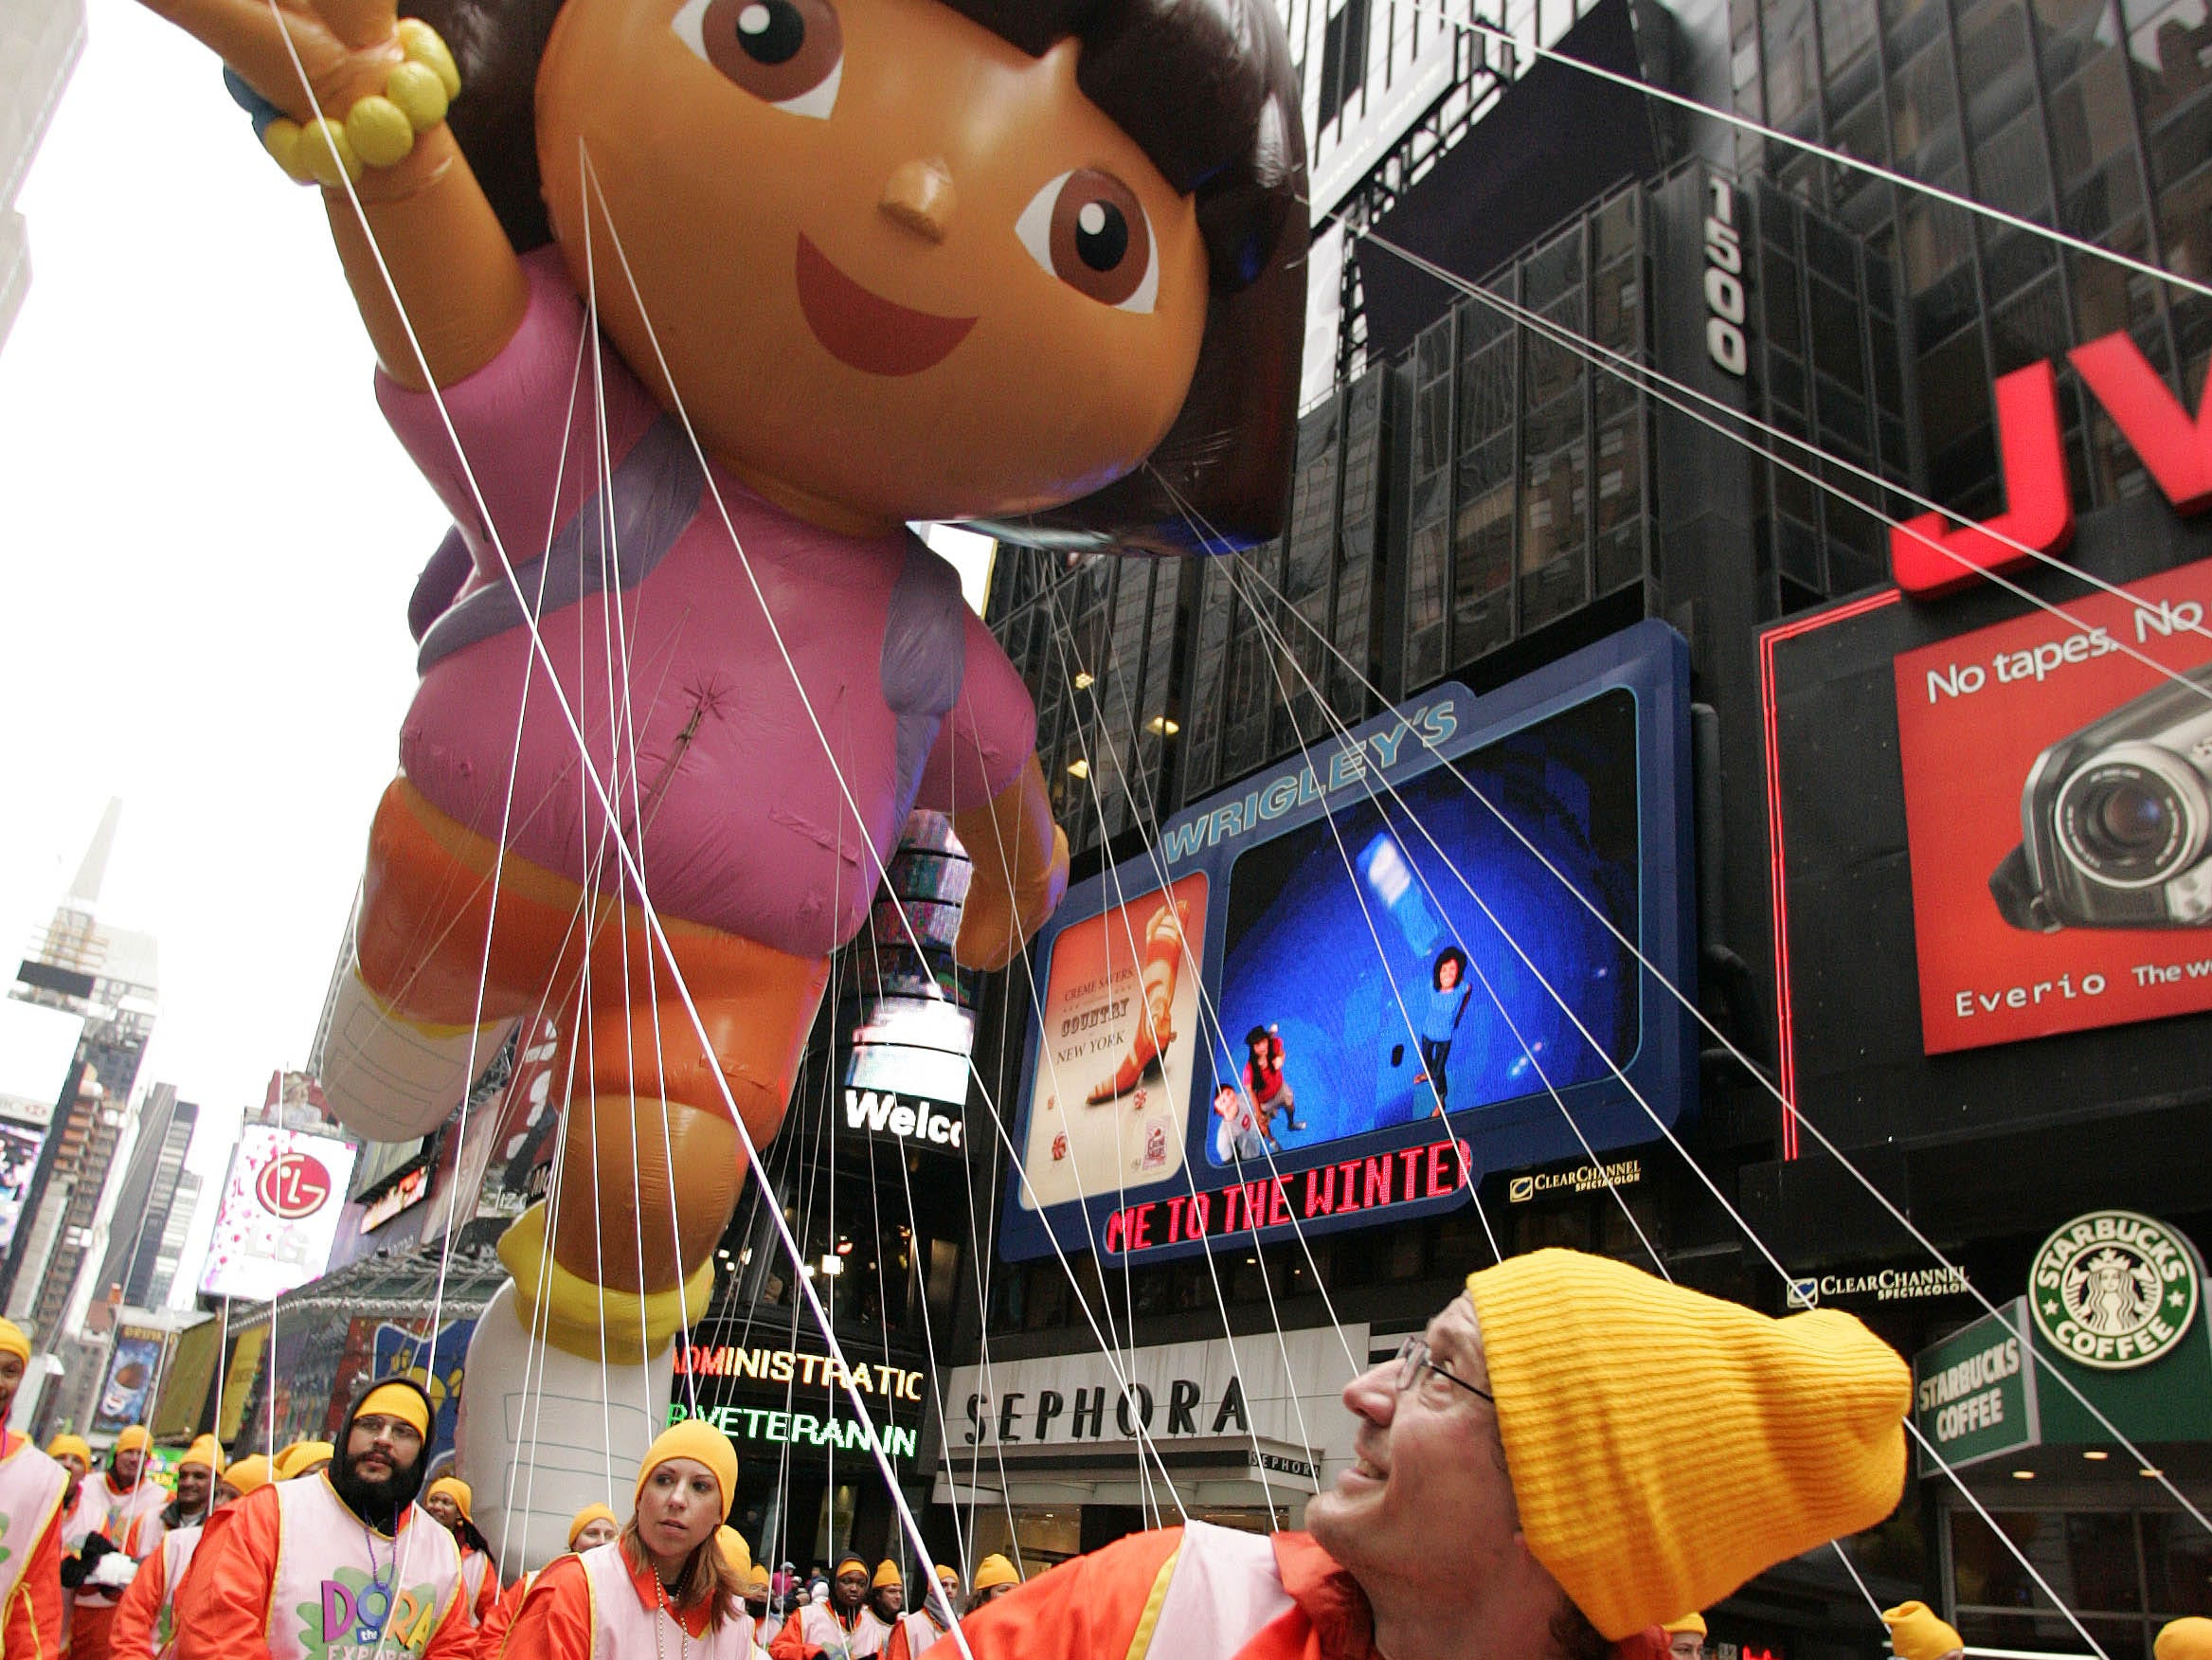 ** FILE ** Robert Segal, of Brooklyn, helps pull a Dora the Explorer balloon through Times Square during the Macy's Thanksgiving Day Parade in this Thursday, Nov. 24, 2005 file photo in New York. There's good news for fans of the Macy's Thanksgiving Day Parade: A helium shortage that has rattled markets around the world during 2006 will not have a deflating effect on the annual New York holiday tradition. (AP Photo/Julie Jacobson)